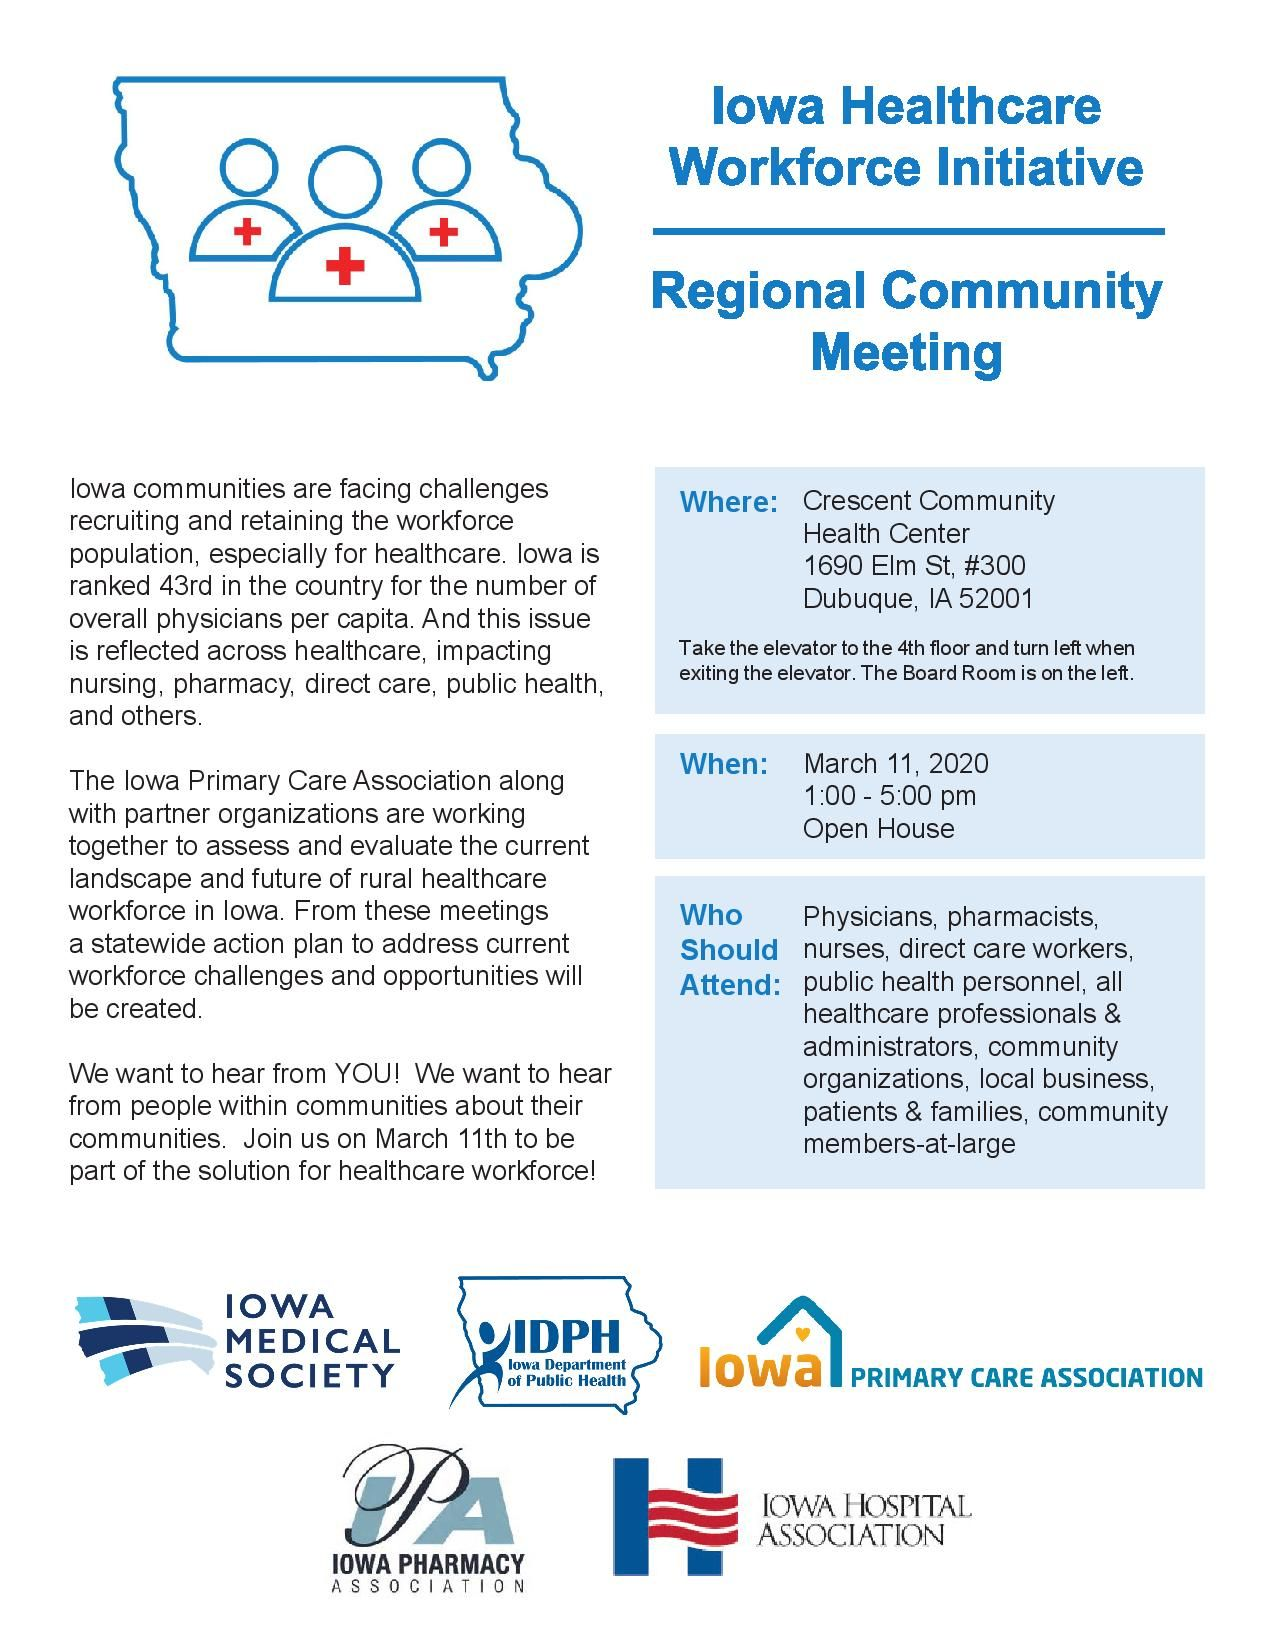 Iowa Healthcare Workforce Initiative: Regional Community Meeting